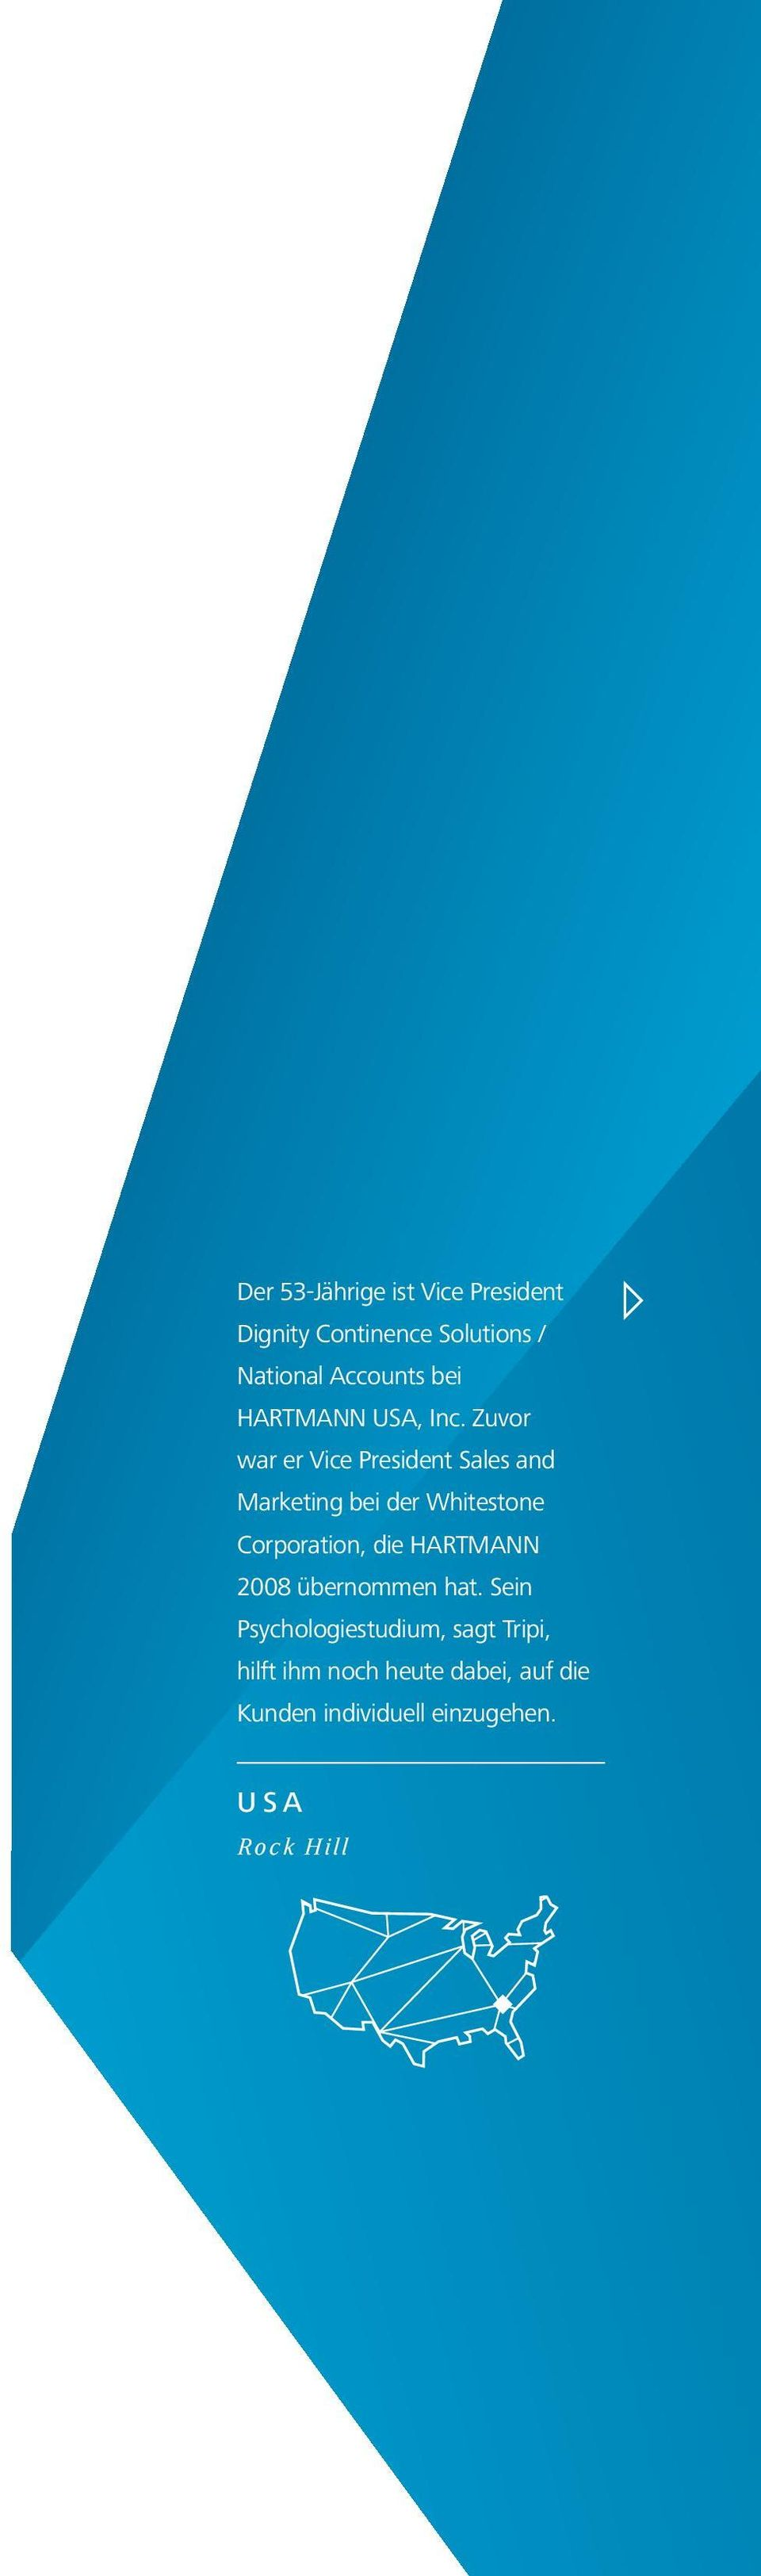 Zuvor war er Vice President Sales and Marketing bei der Whitestone Corporation, die